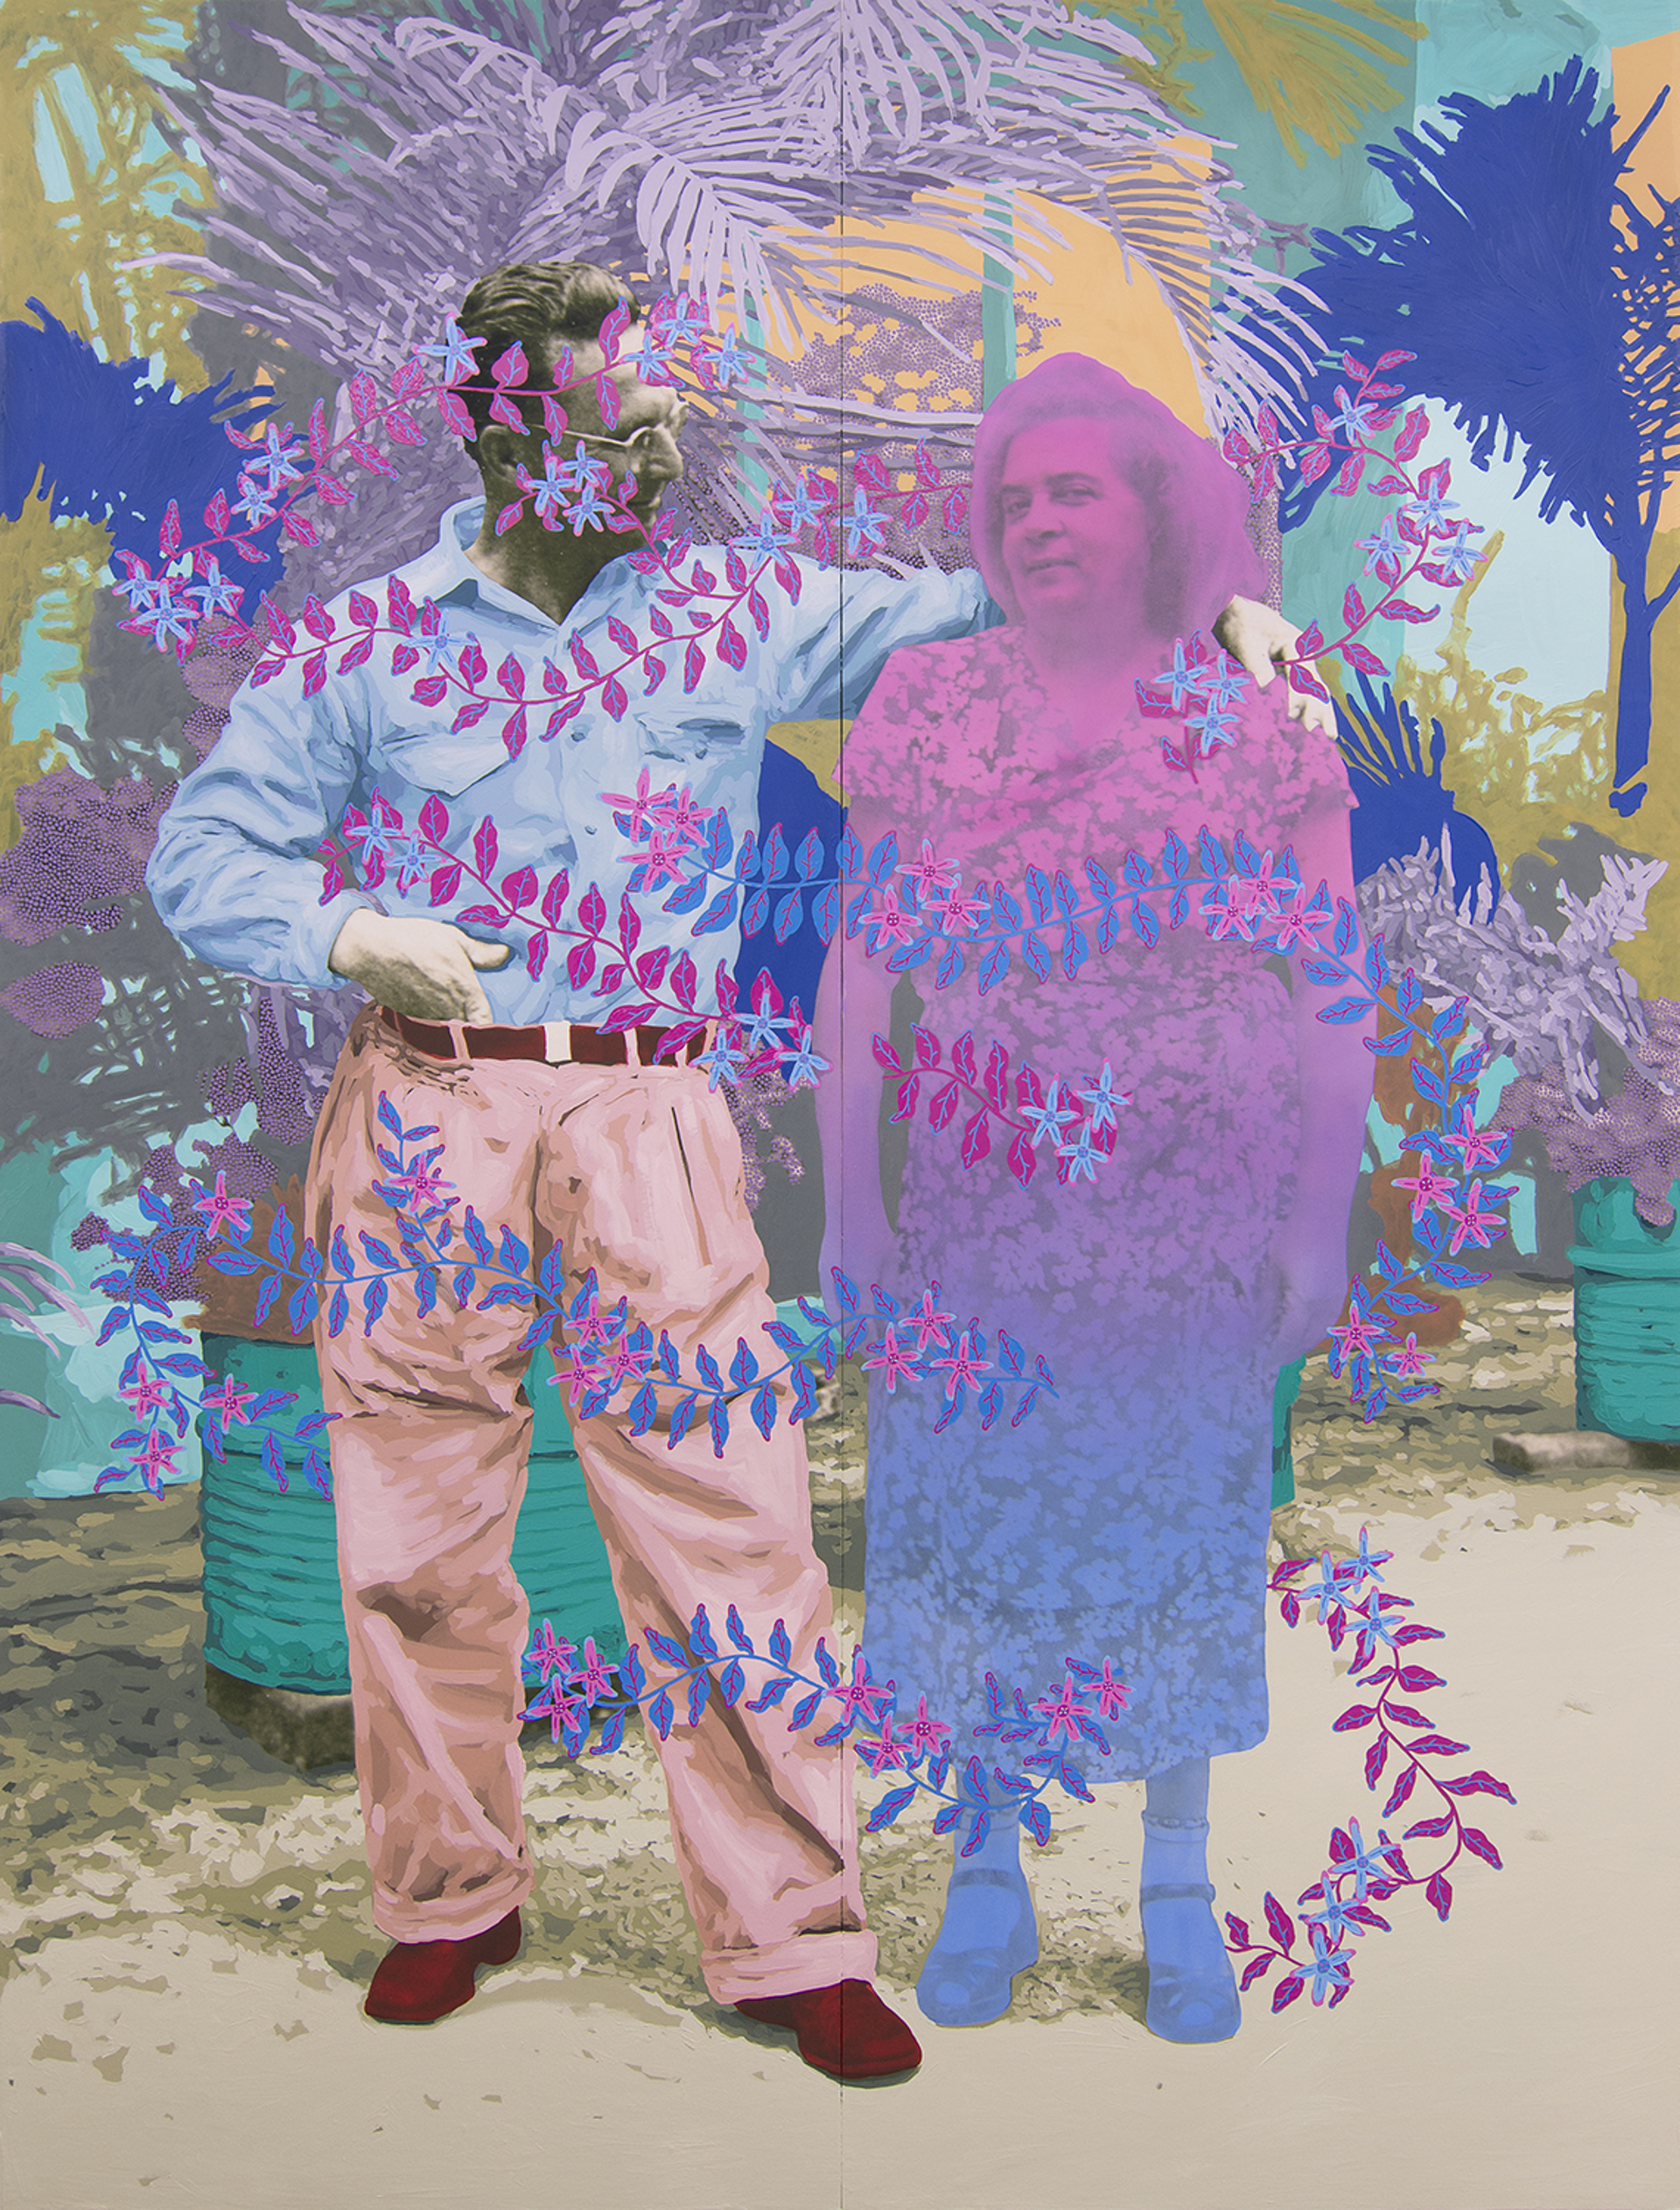 Untitled (Mischievous Couple) by Daisy Patton